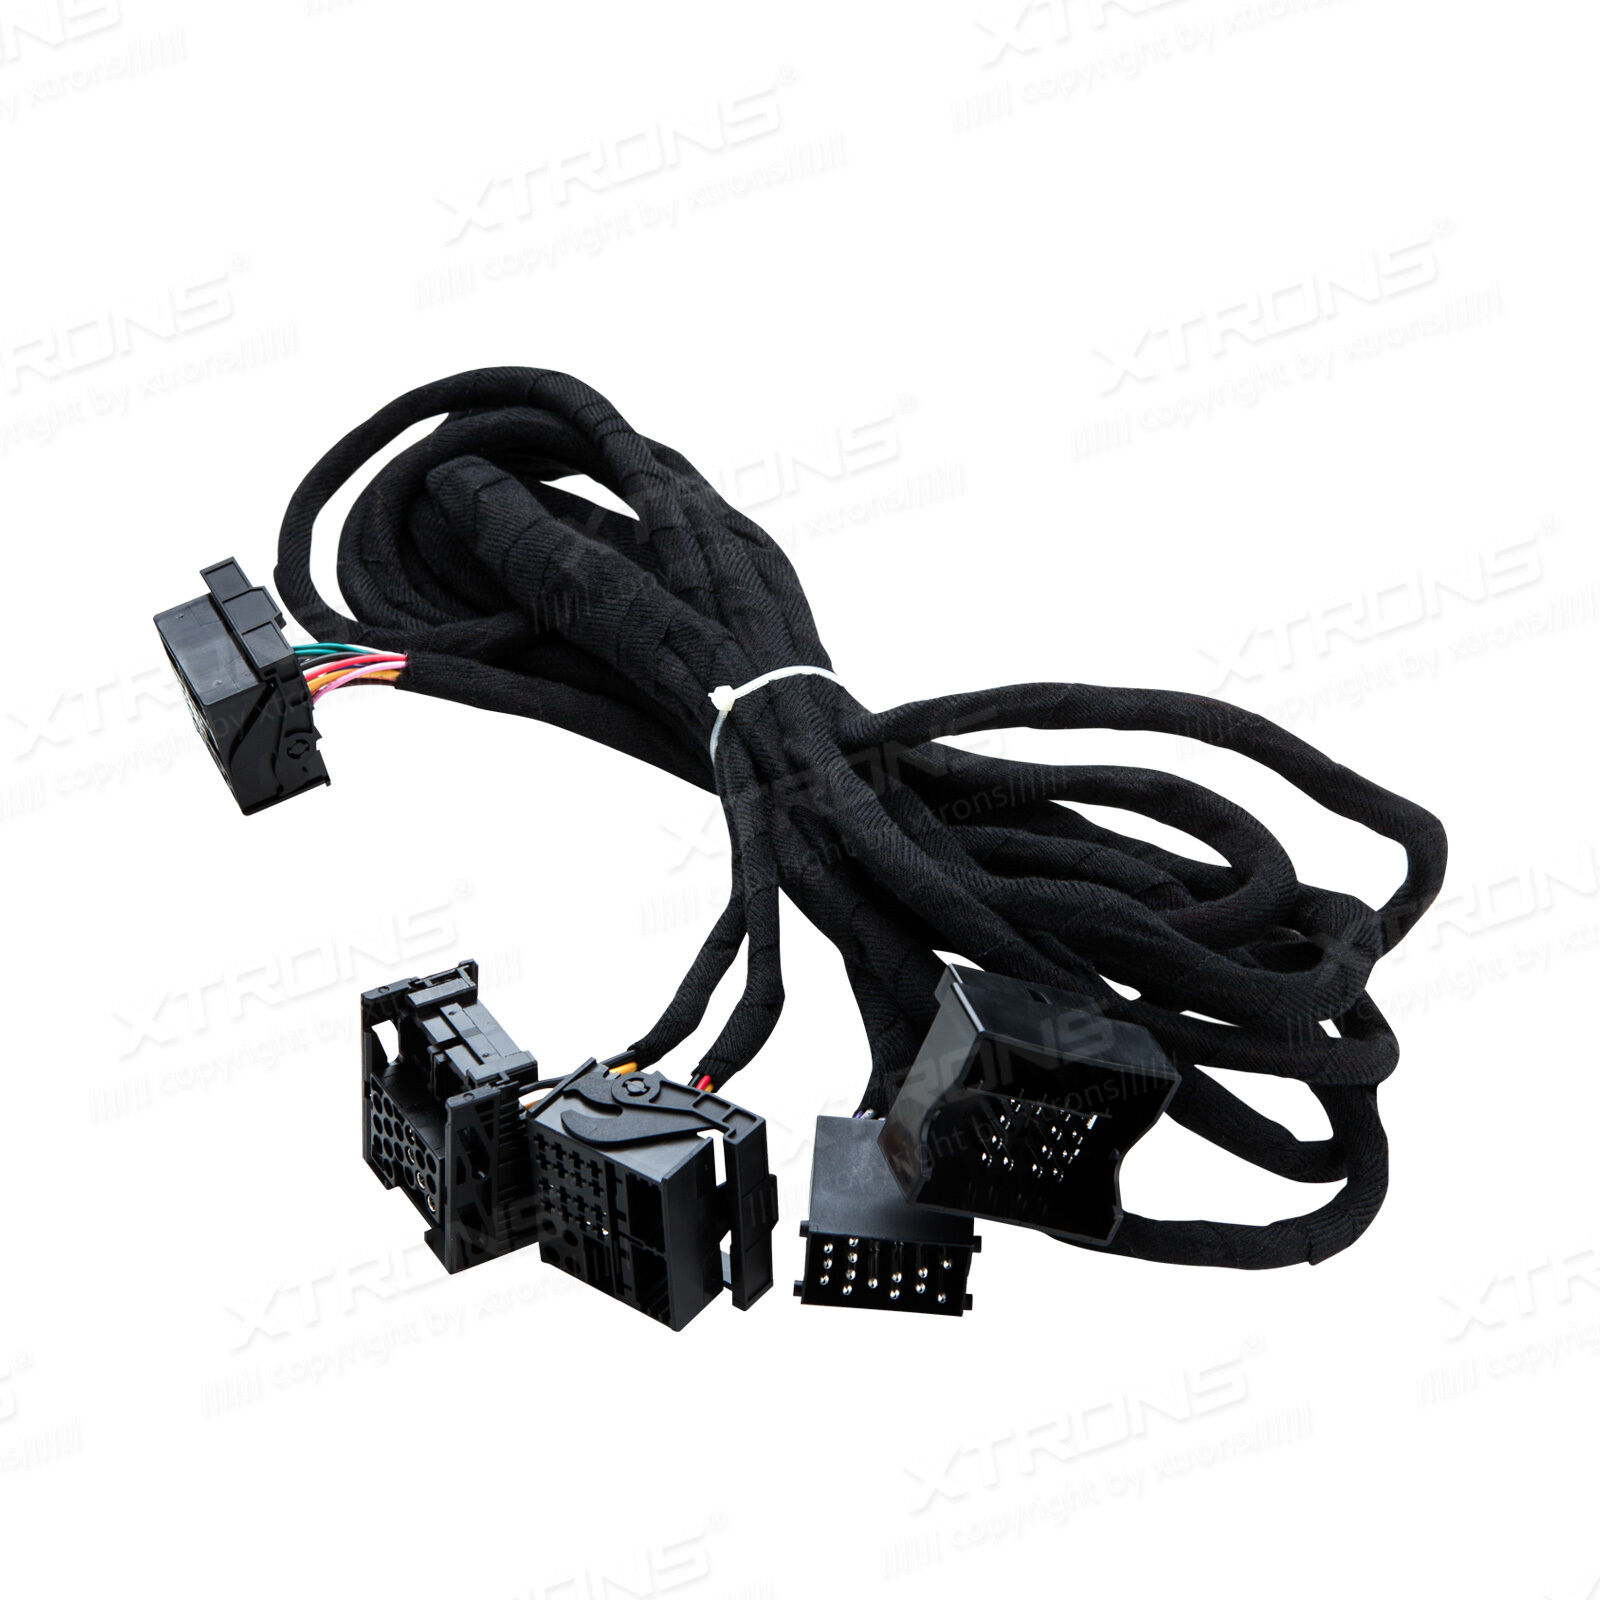 s l1600 car stereo iso wiring harness extra long 6m cable adapter for bmw xtrons wiring harness at gsmx.co